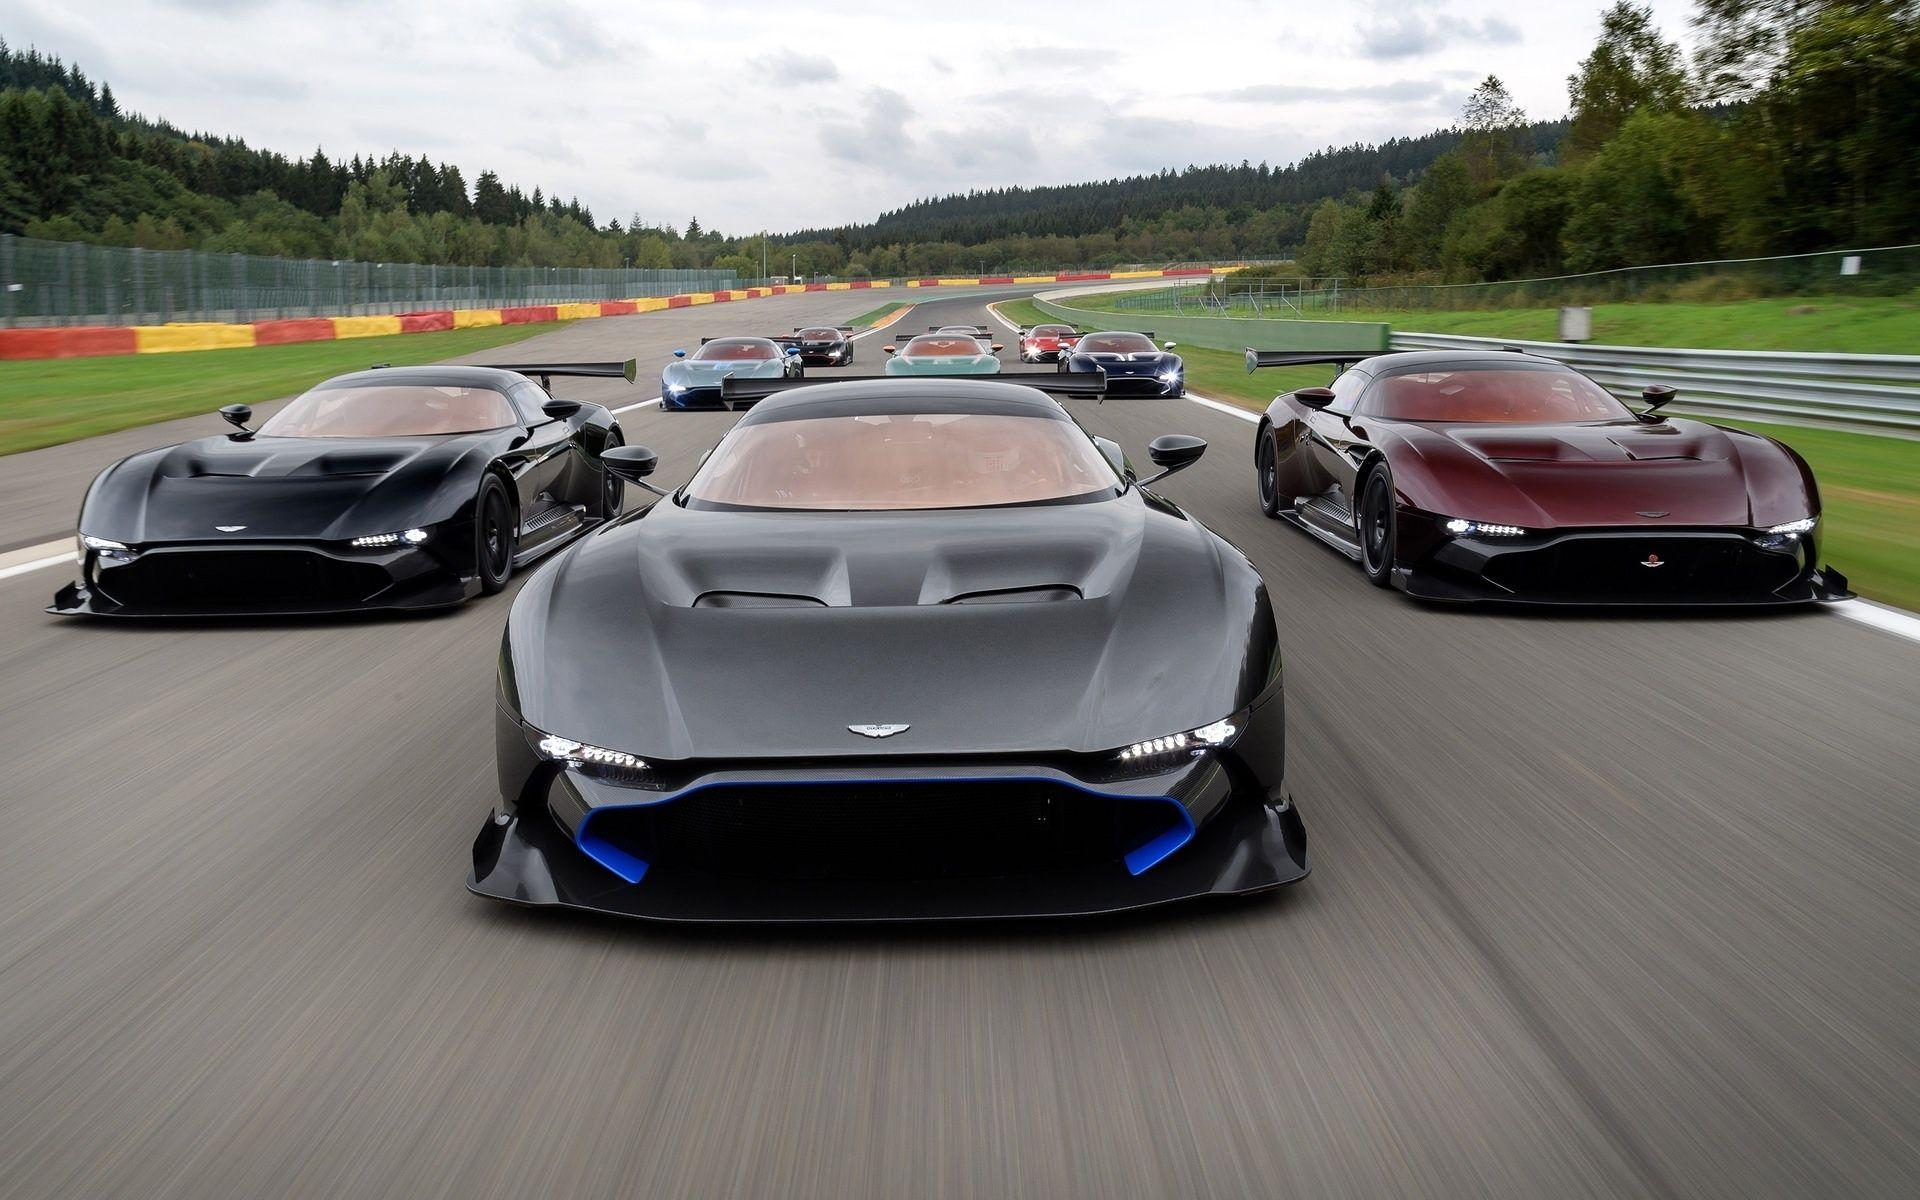 Aston Martin Vulcan Wallpapers